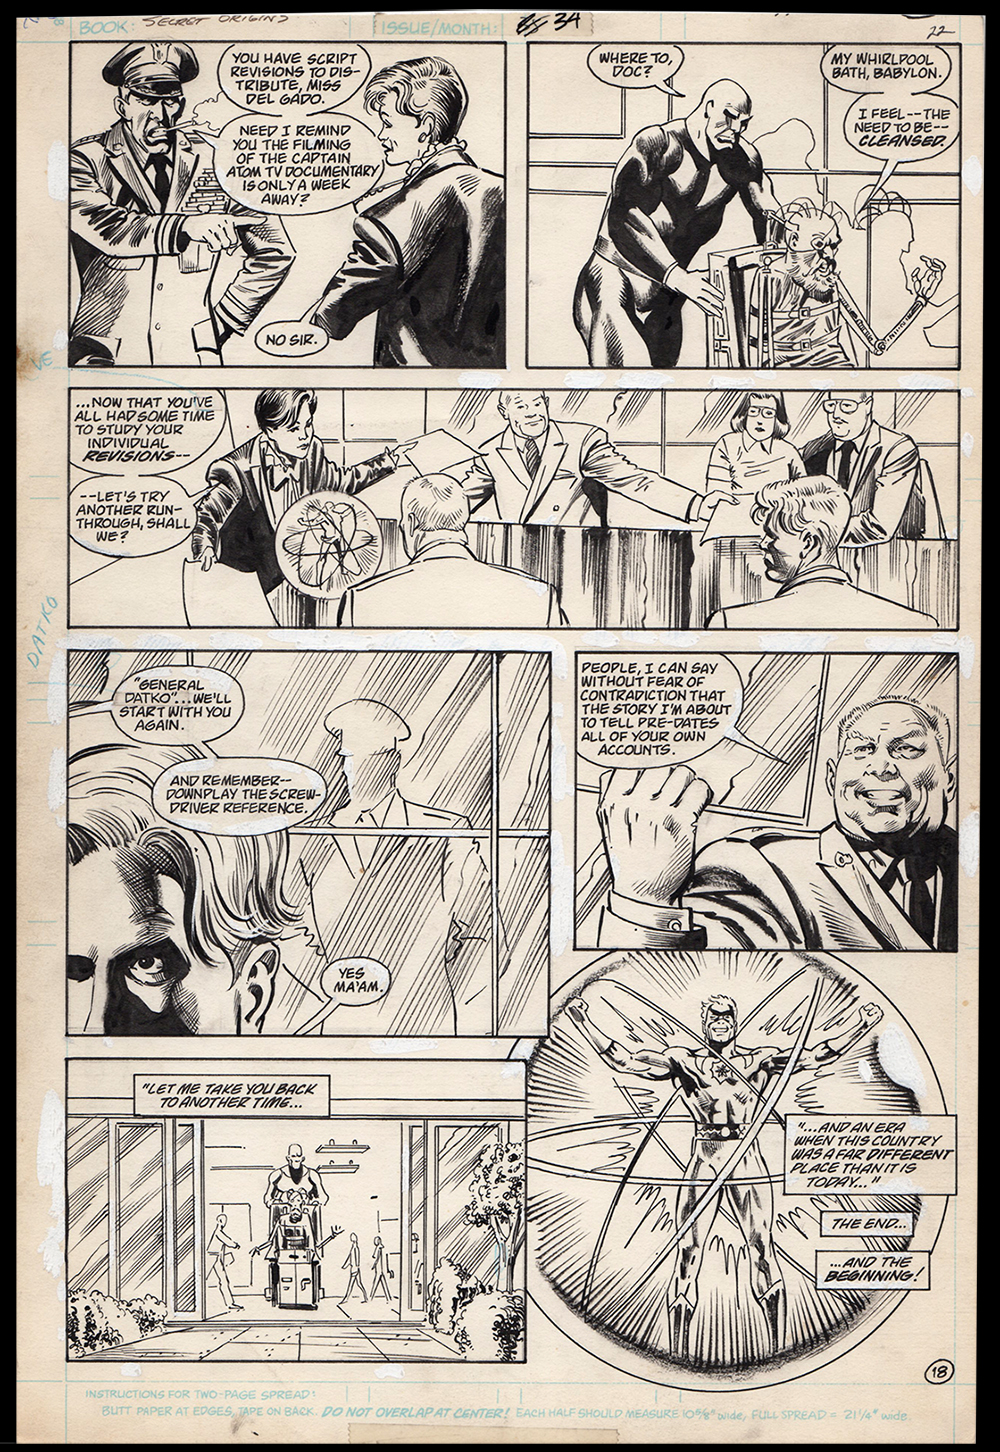 Image: Secret Origins #34 Art by Alan Weiss Origin Captain Atom